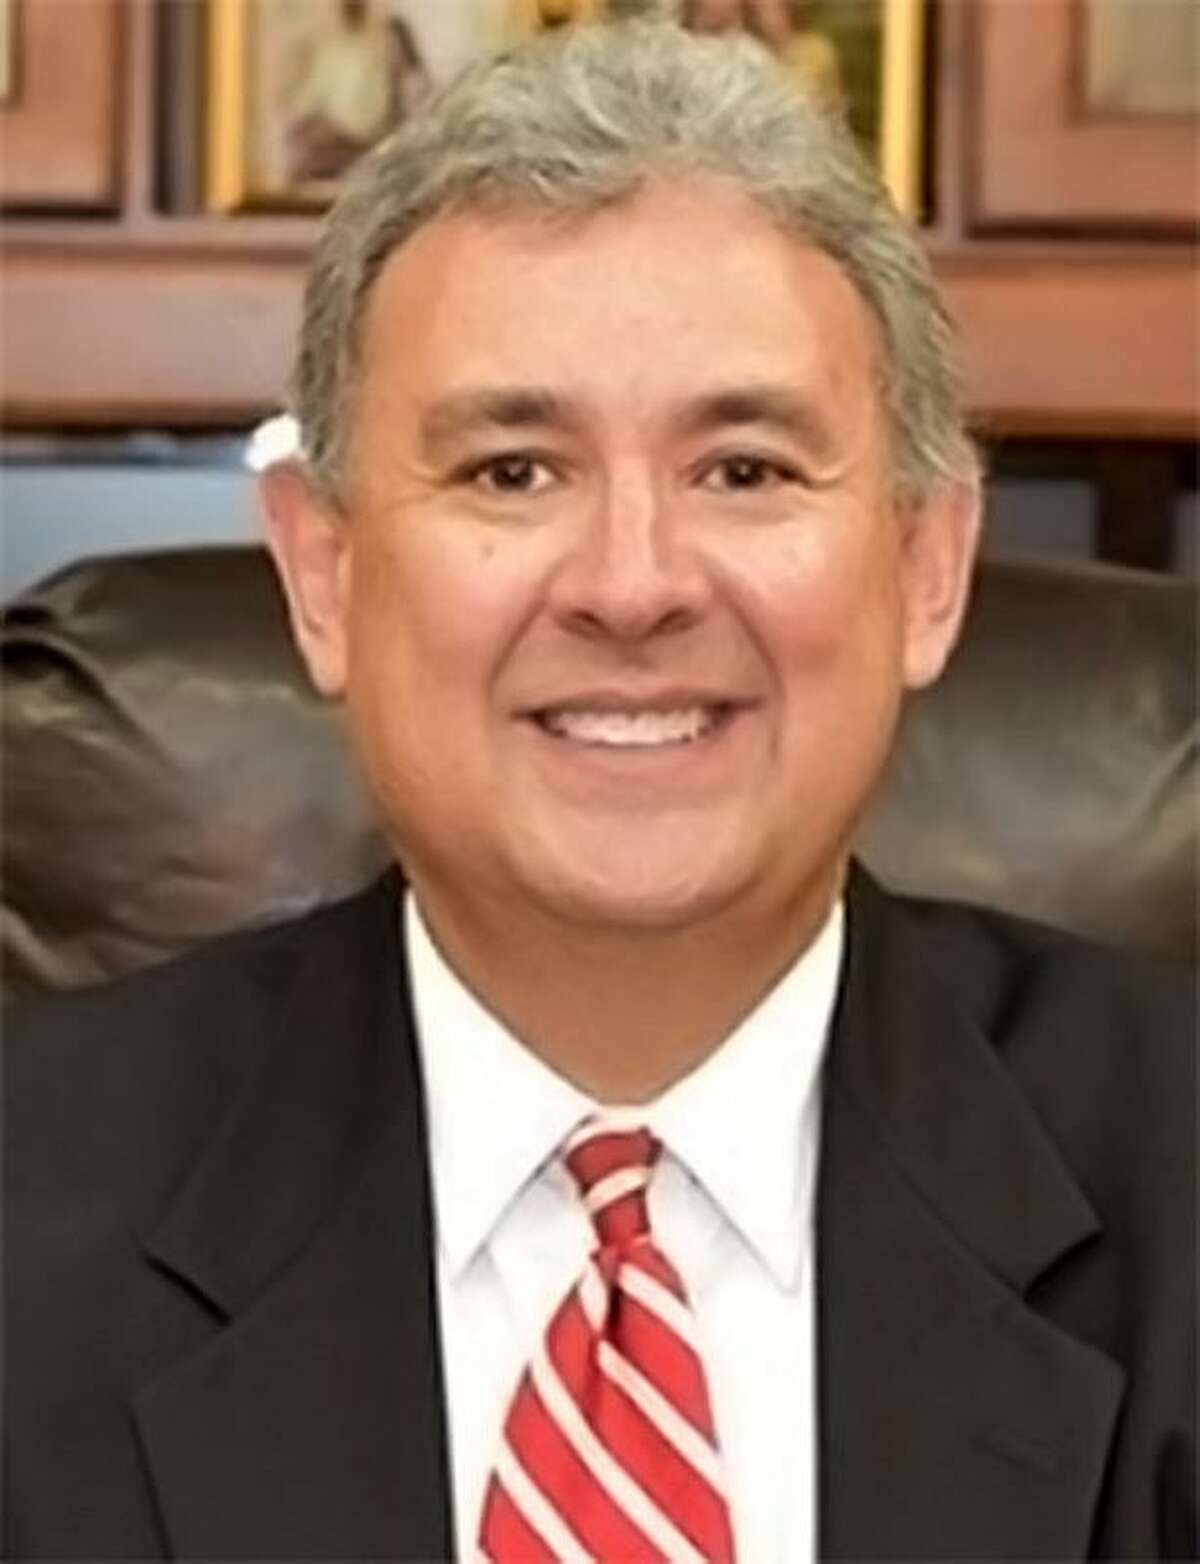 Attorney Joe D. Gonzales is running for district attorney of Bexar County